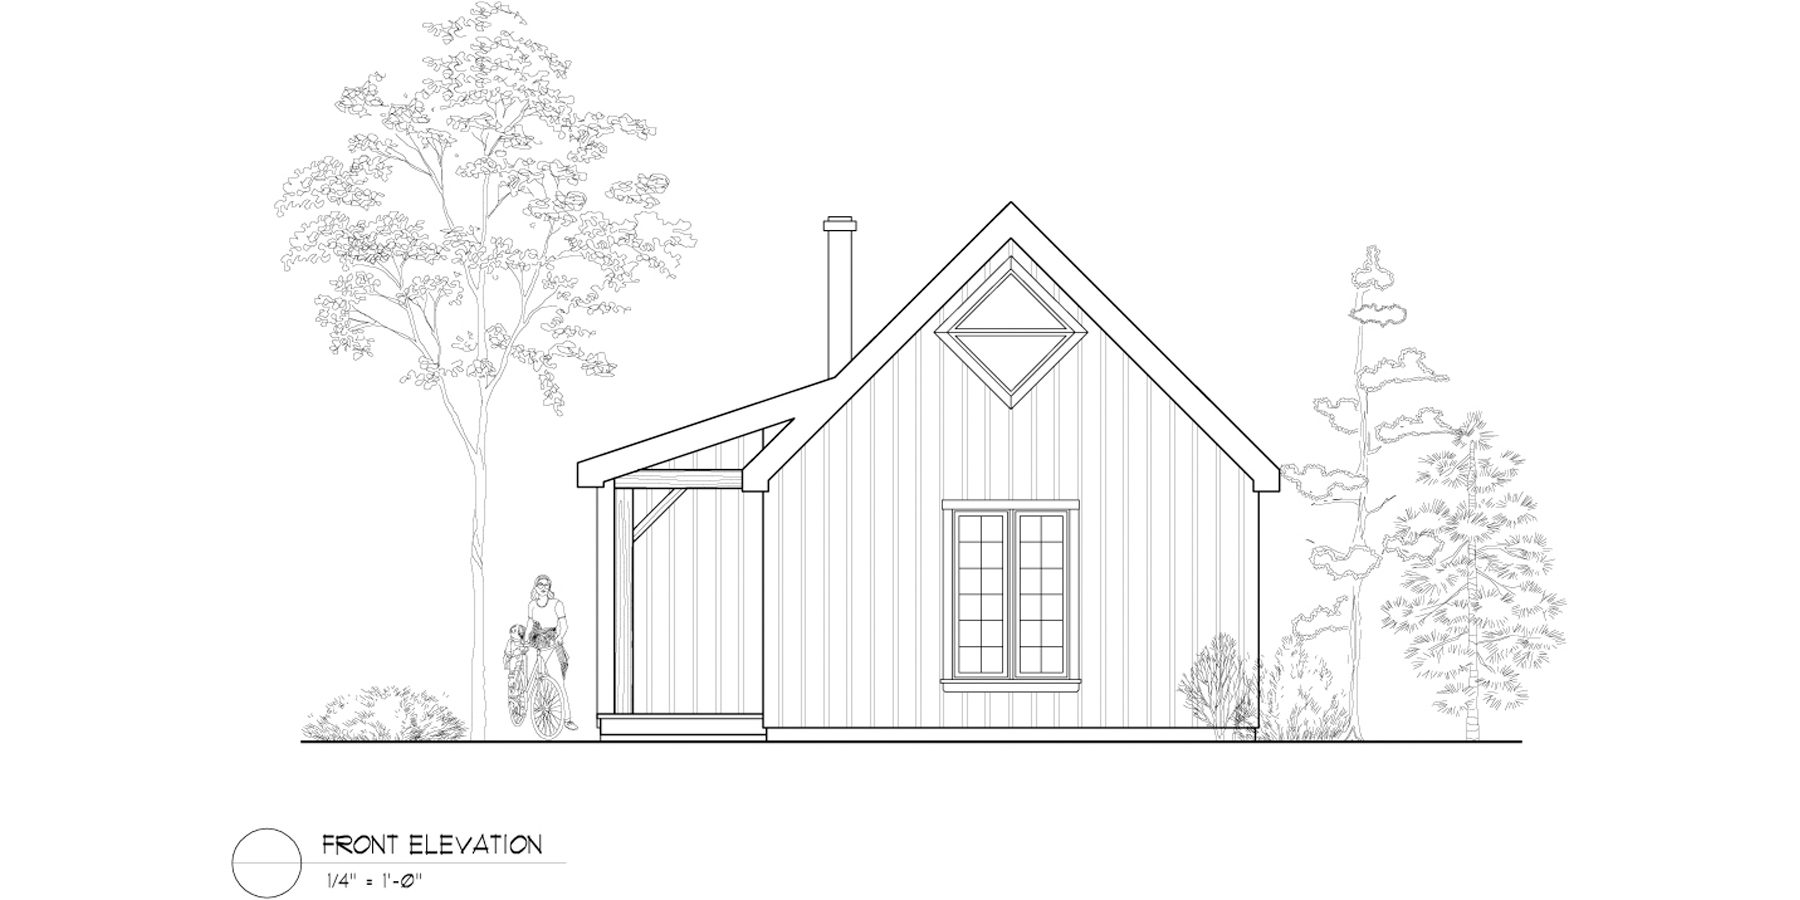 Normerica Timber Frame, House Plan, The Retreat 3143, Front Elevation